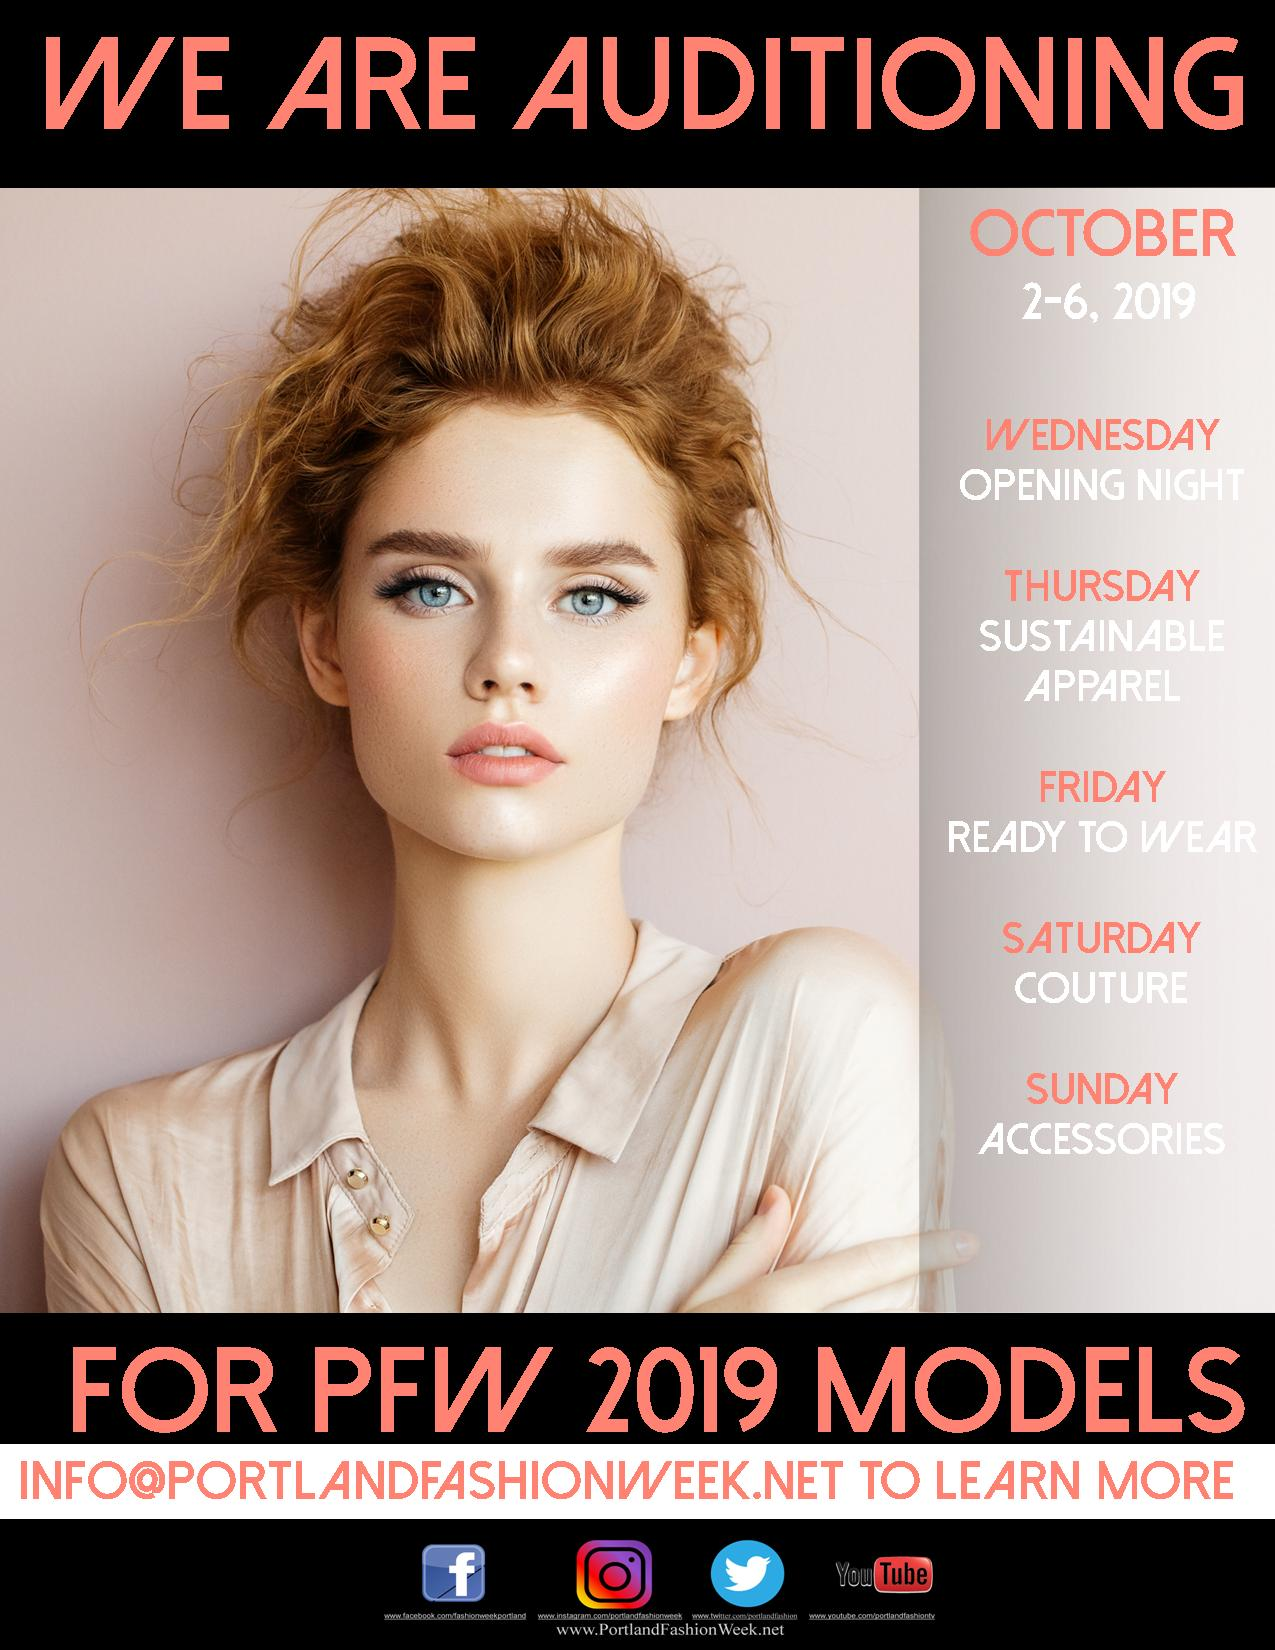 E Submissions for PFW 2019 now accepted - Please contact us at info@portlandfashionweek.net with current measurements and images, and we will reply with further information. Thank you!